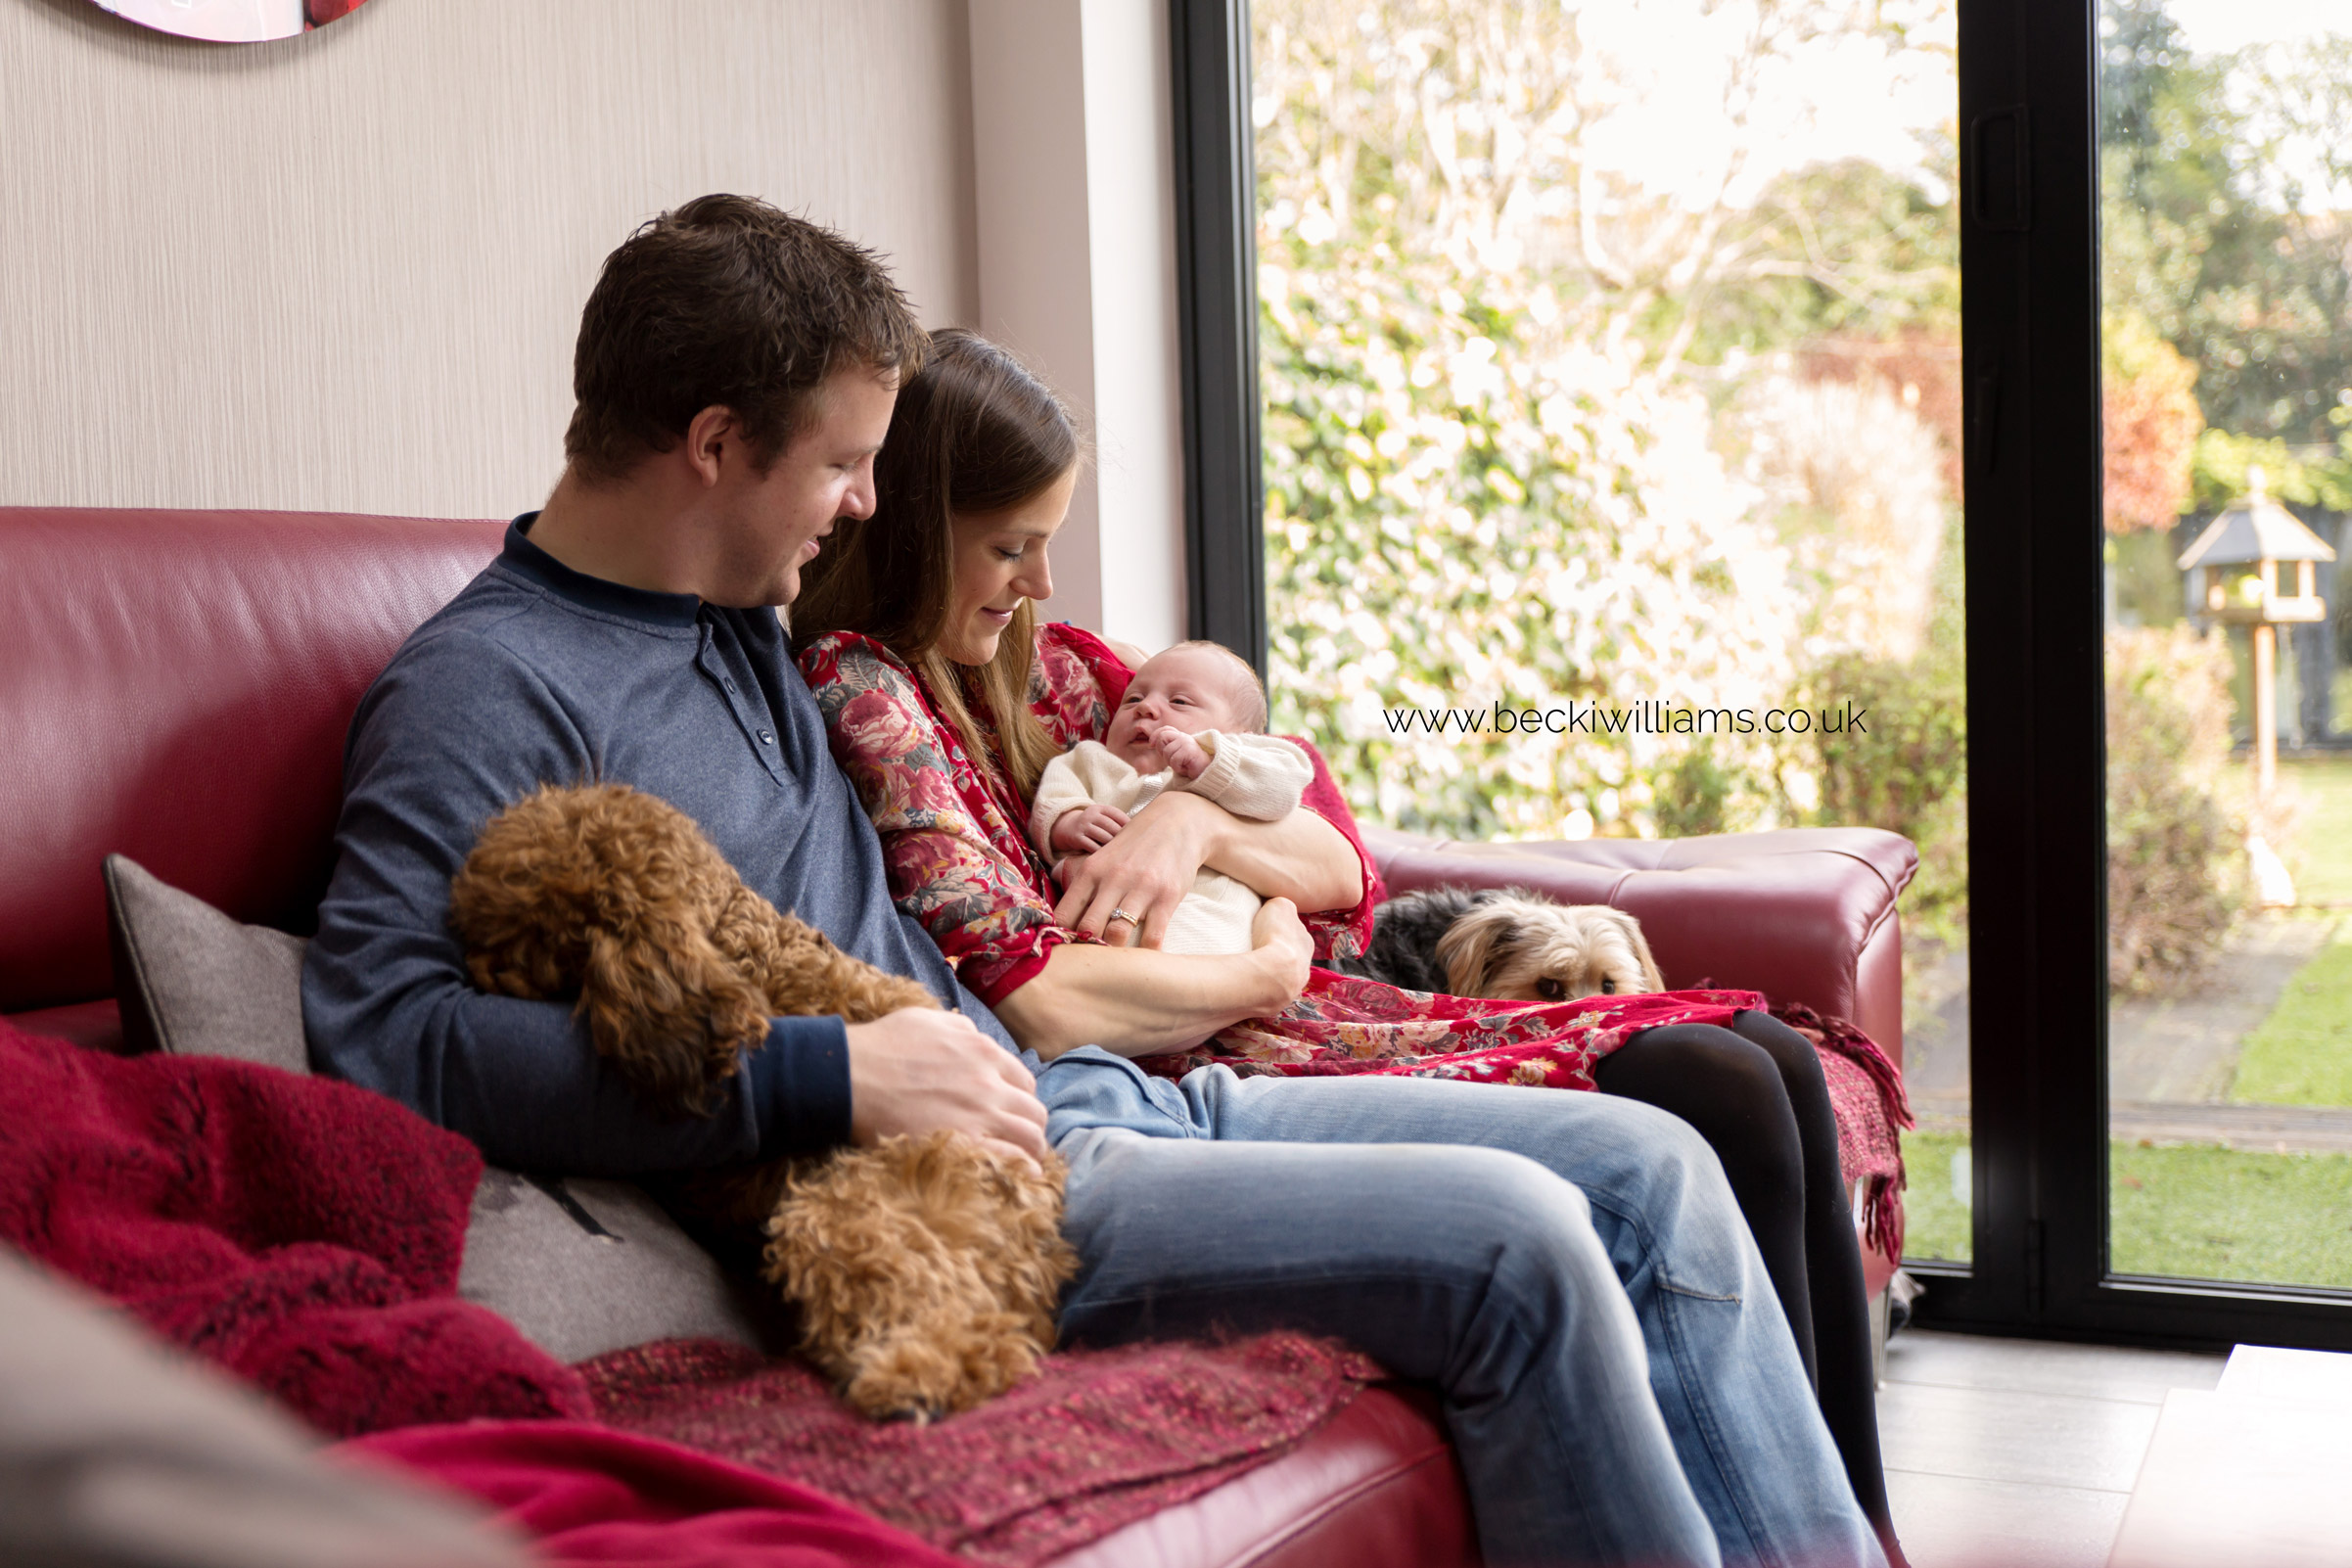 mum, dad, newborn baby and two dogs sitting on the sofa in their living room